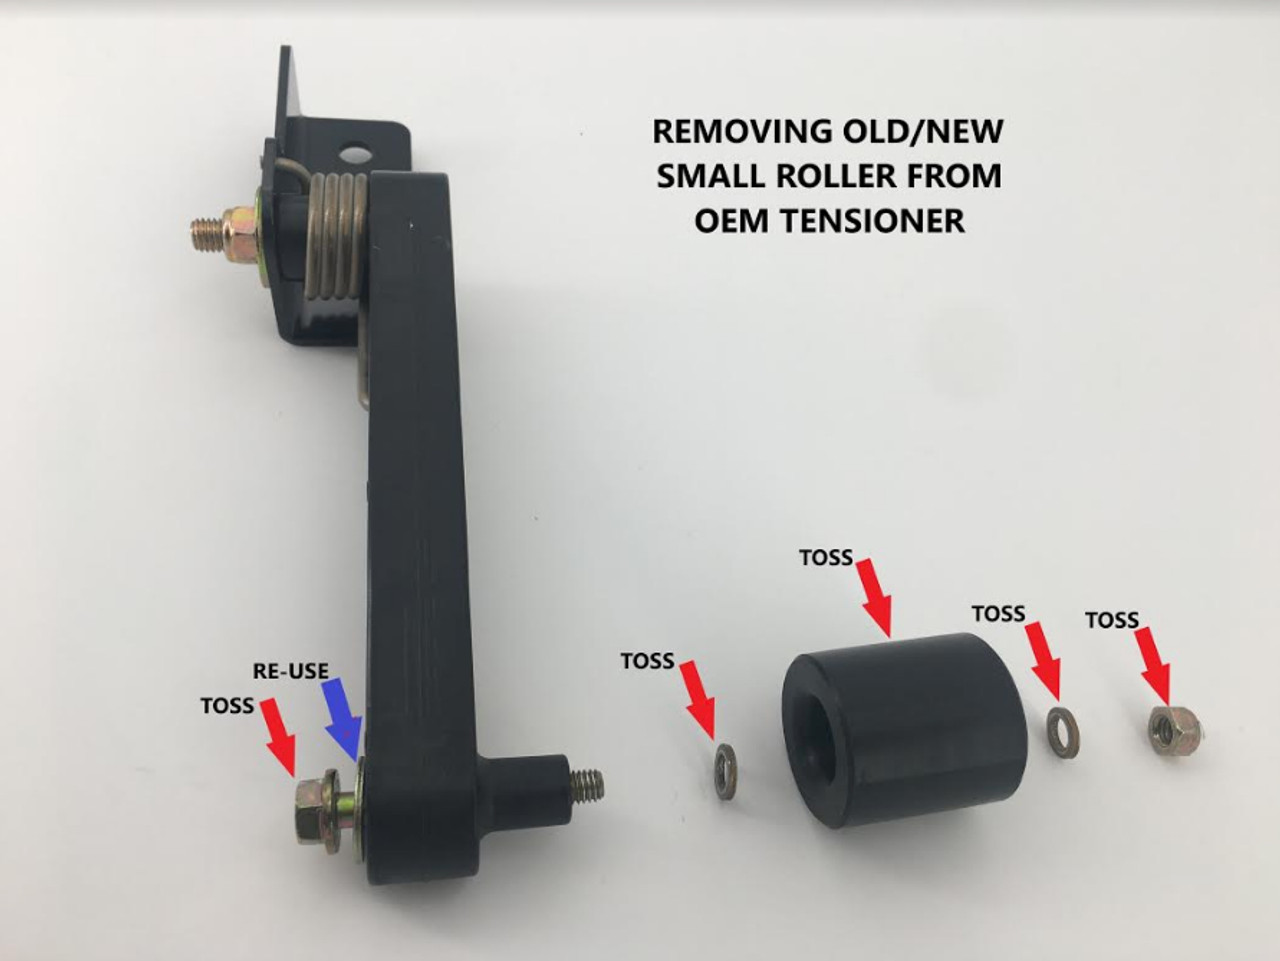 Removing Old/New Small Roller From OEM Tensioner